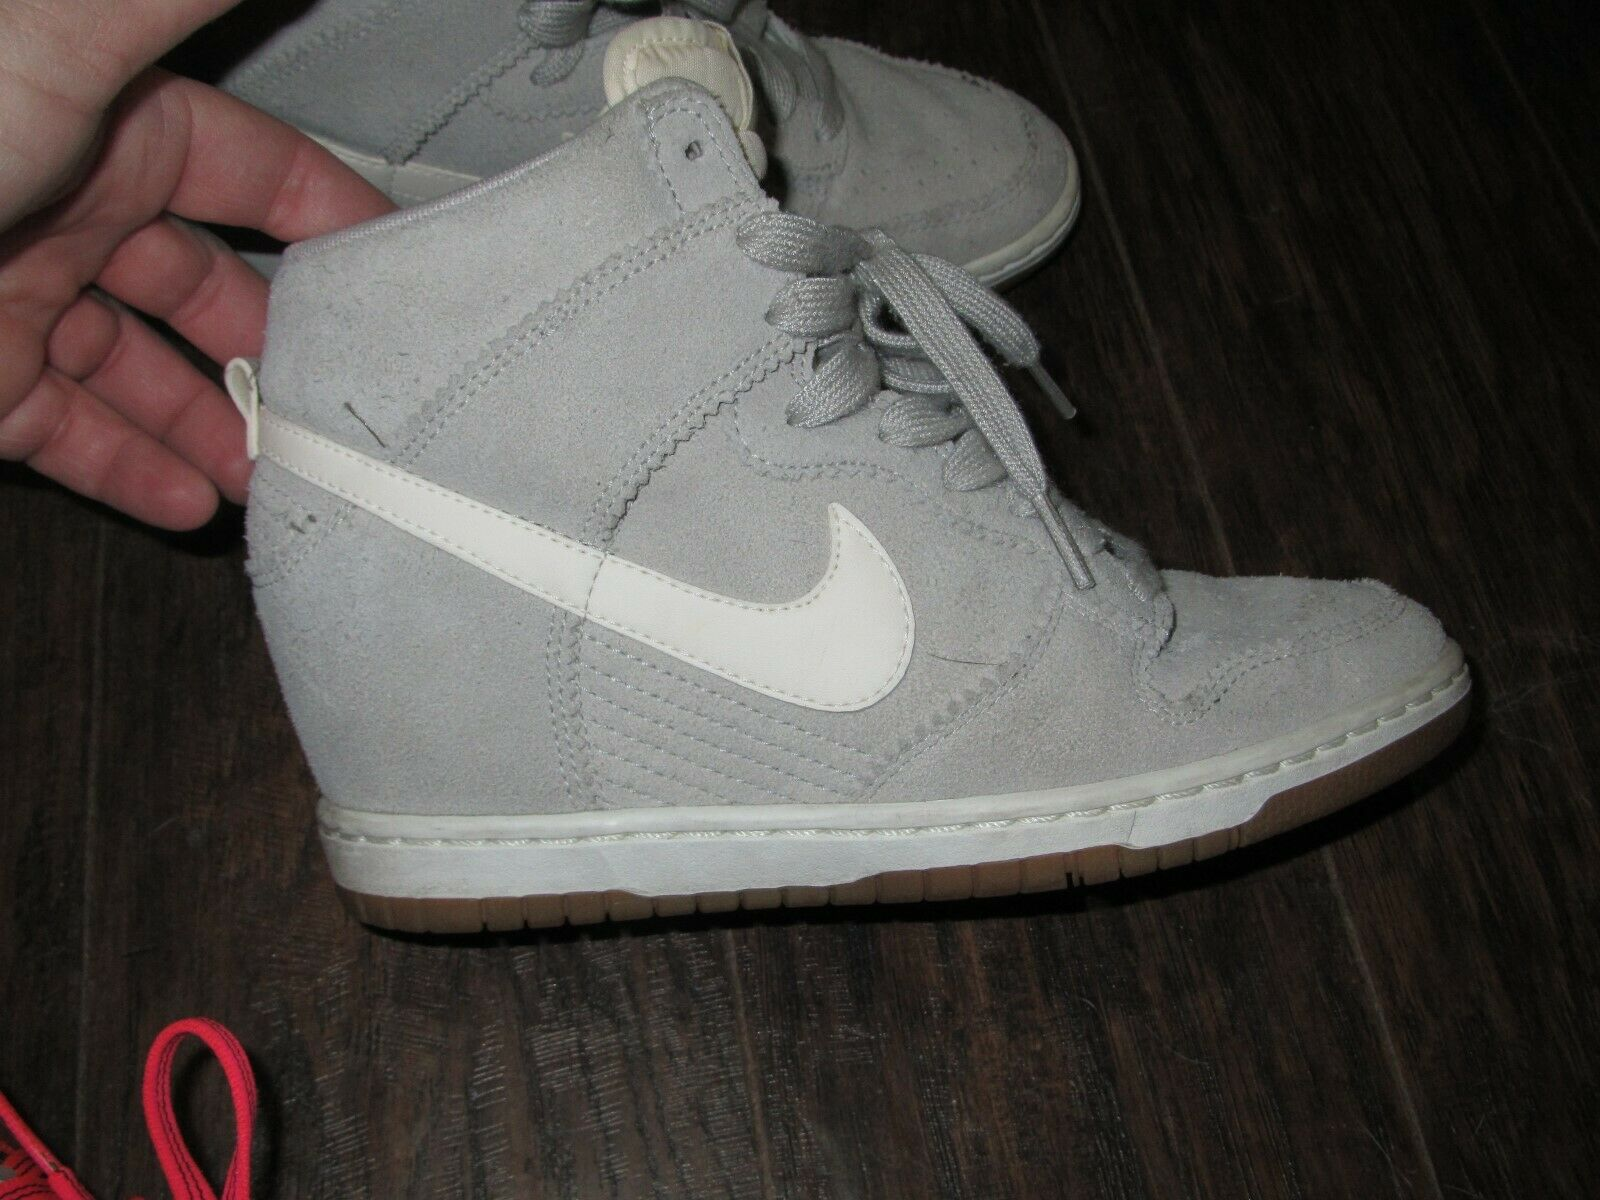 Nike Dunk Sky Hi High Wedge Light Grey Size 7